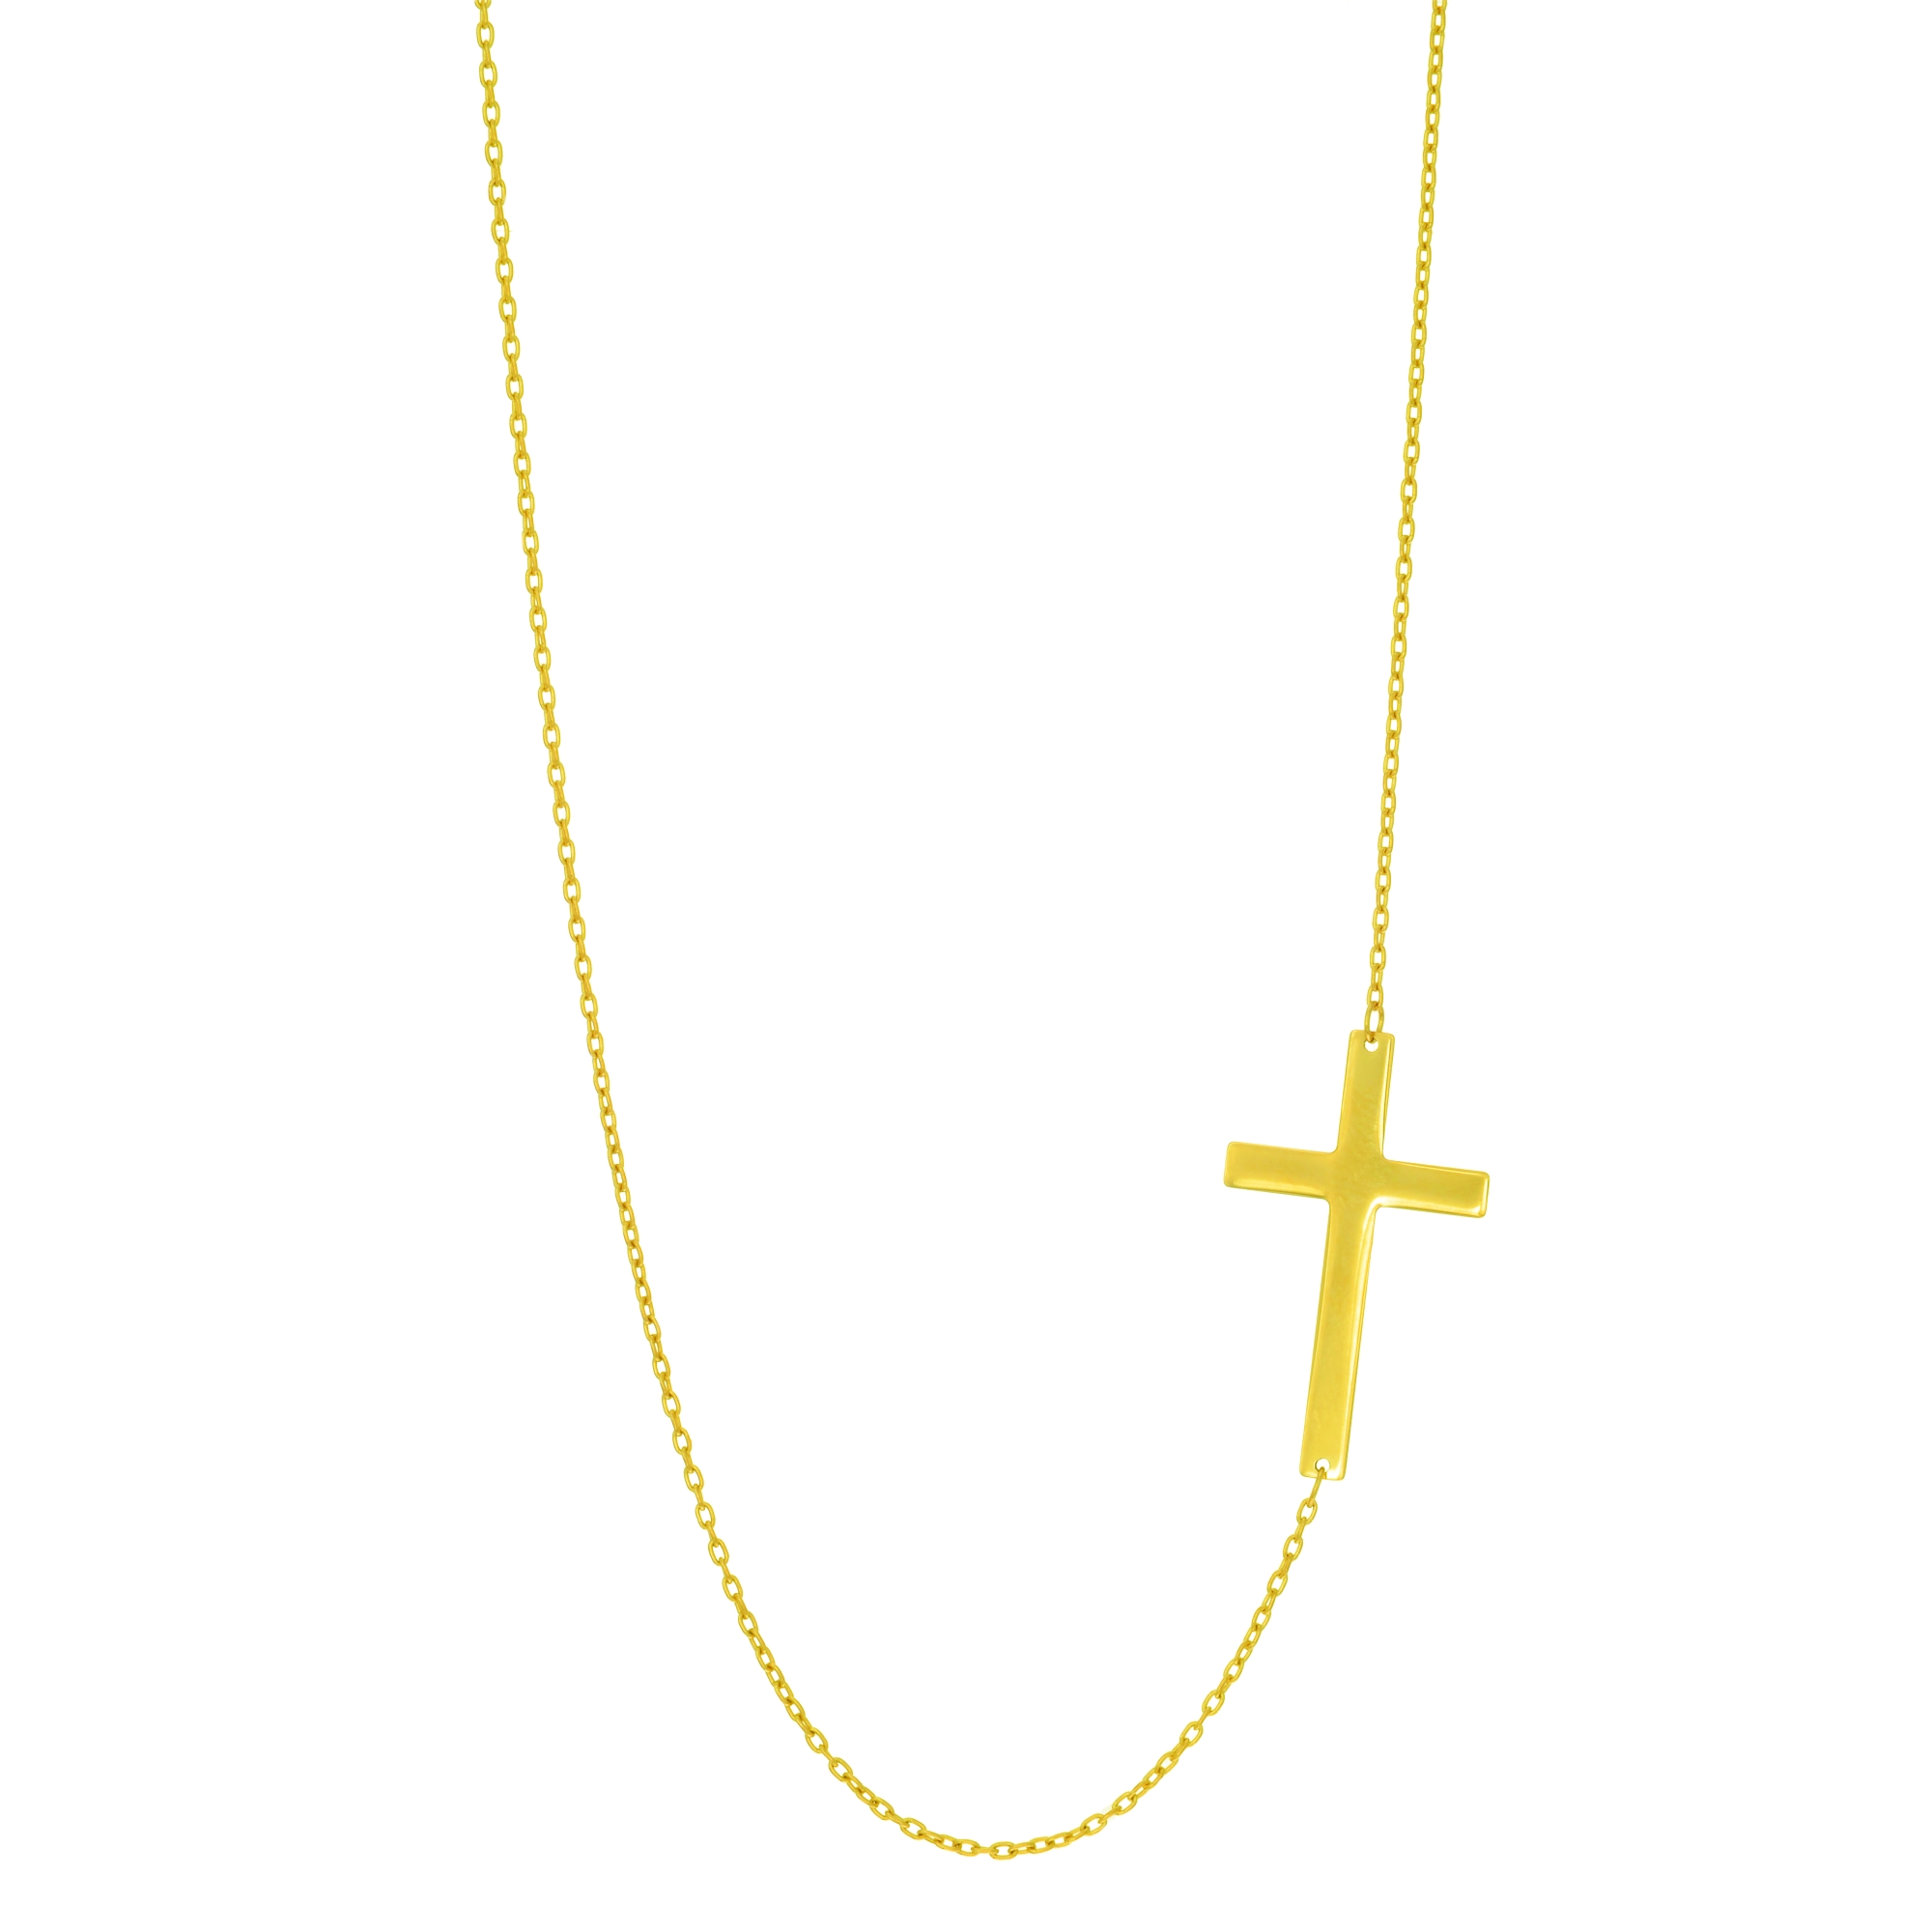 14k Yellow Gold Sideways Cubic Zirconia Cross Necklace Adjustable Chain 18 Inches by JewelryAffairs